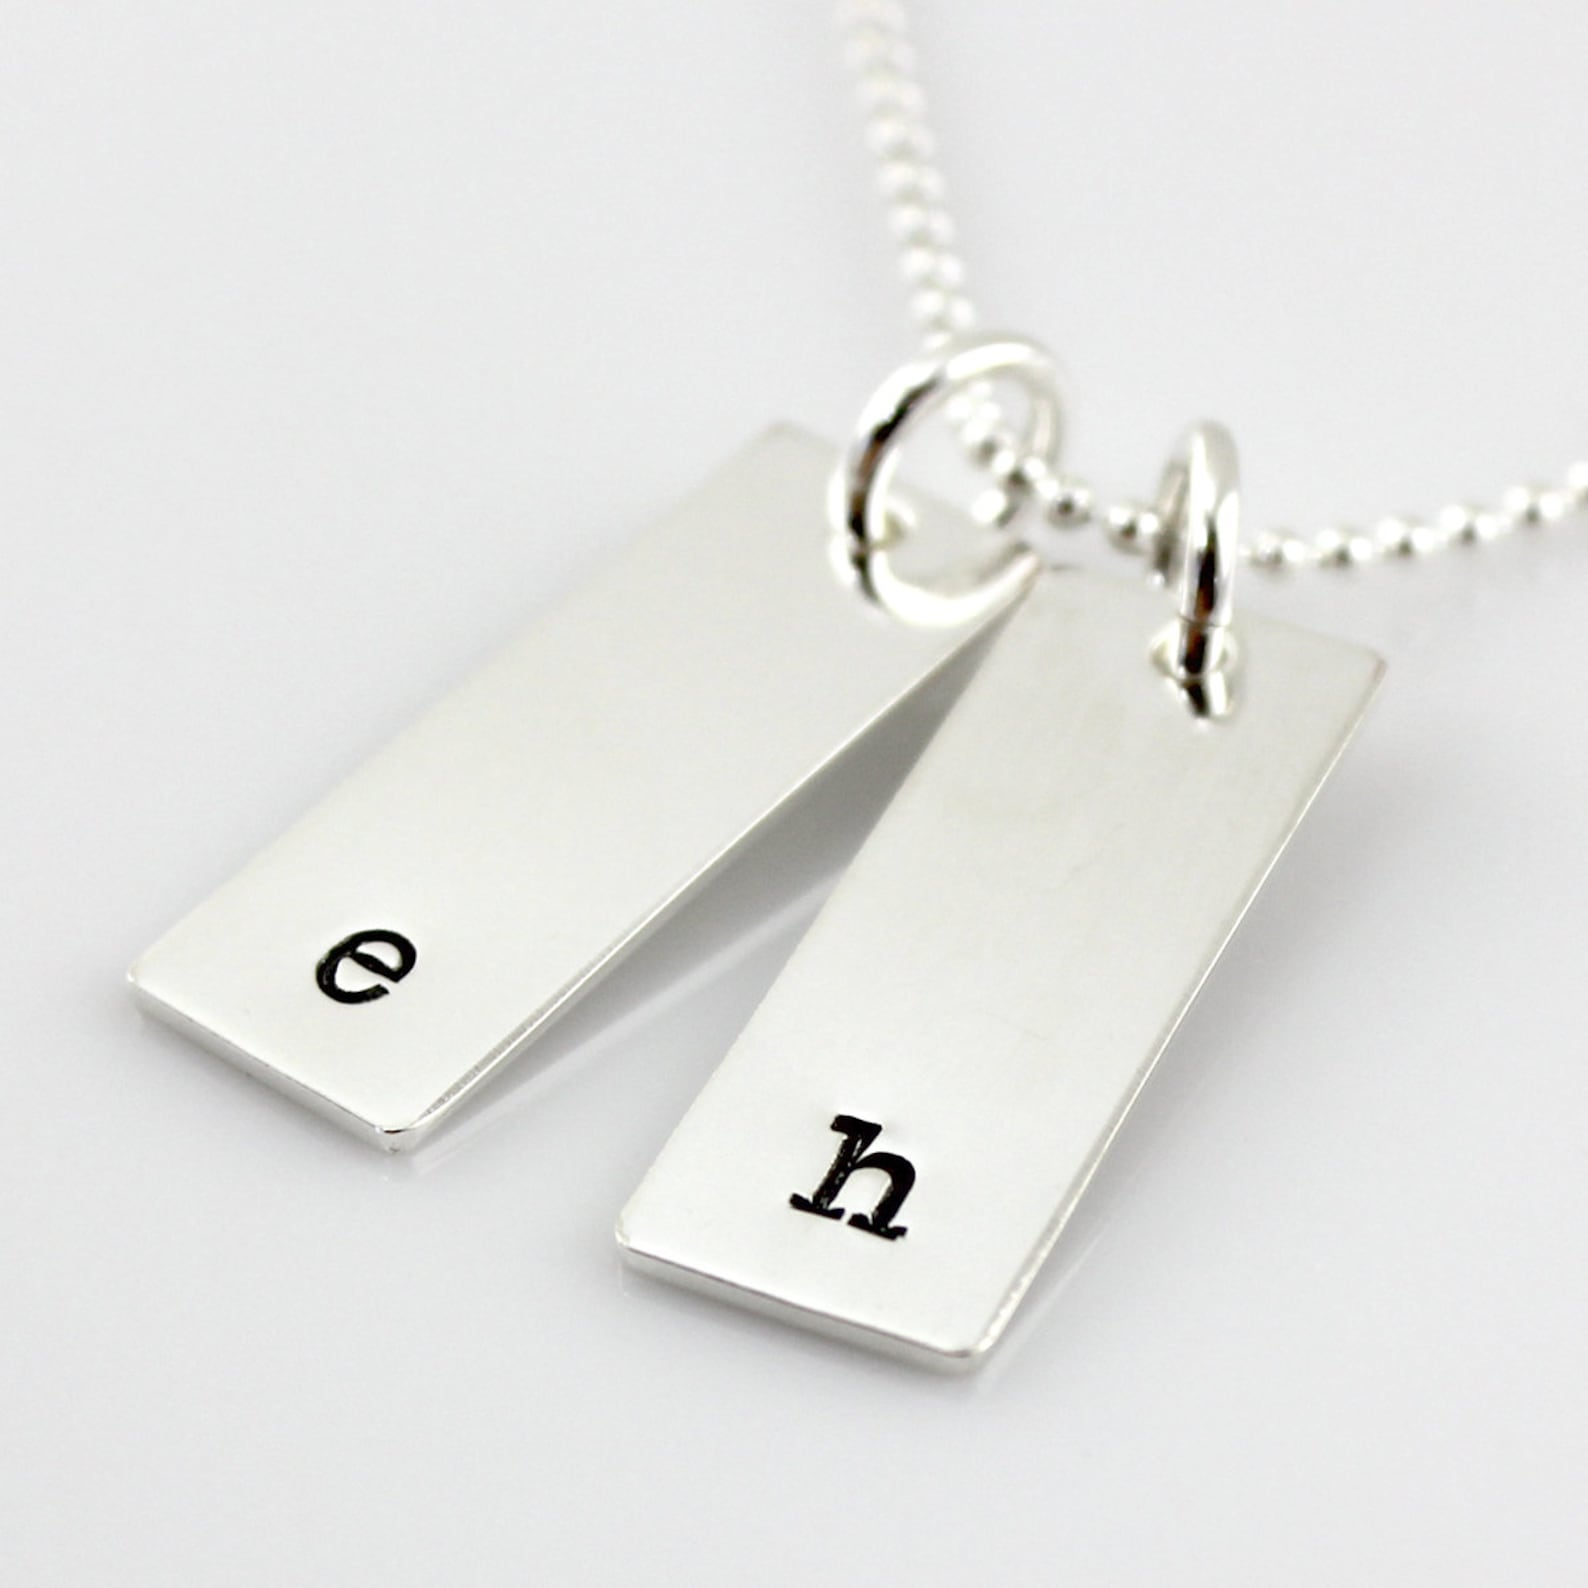 Initial Tag Necklace with two tags